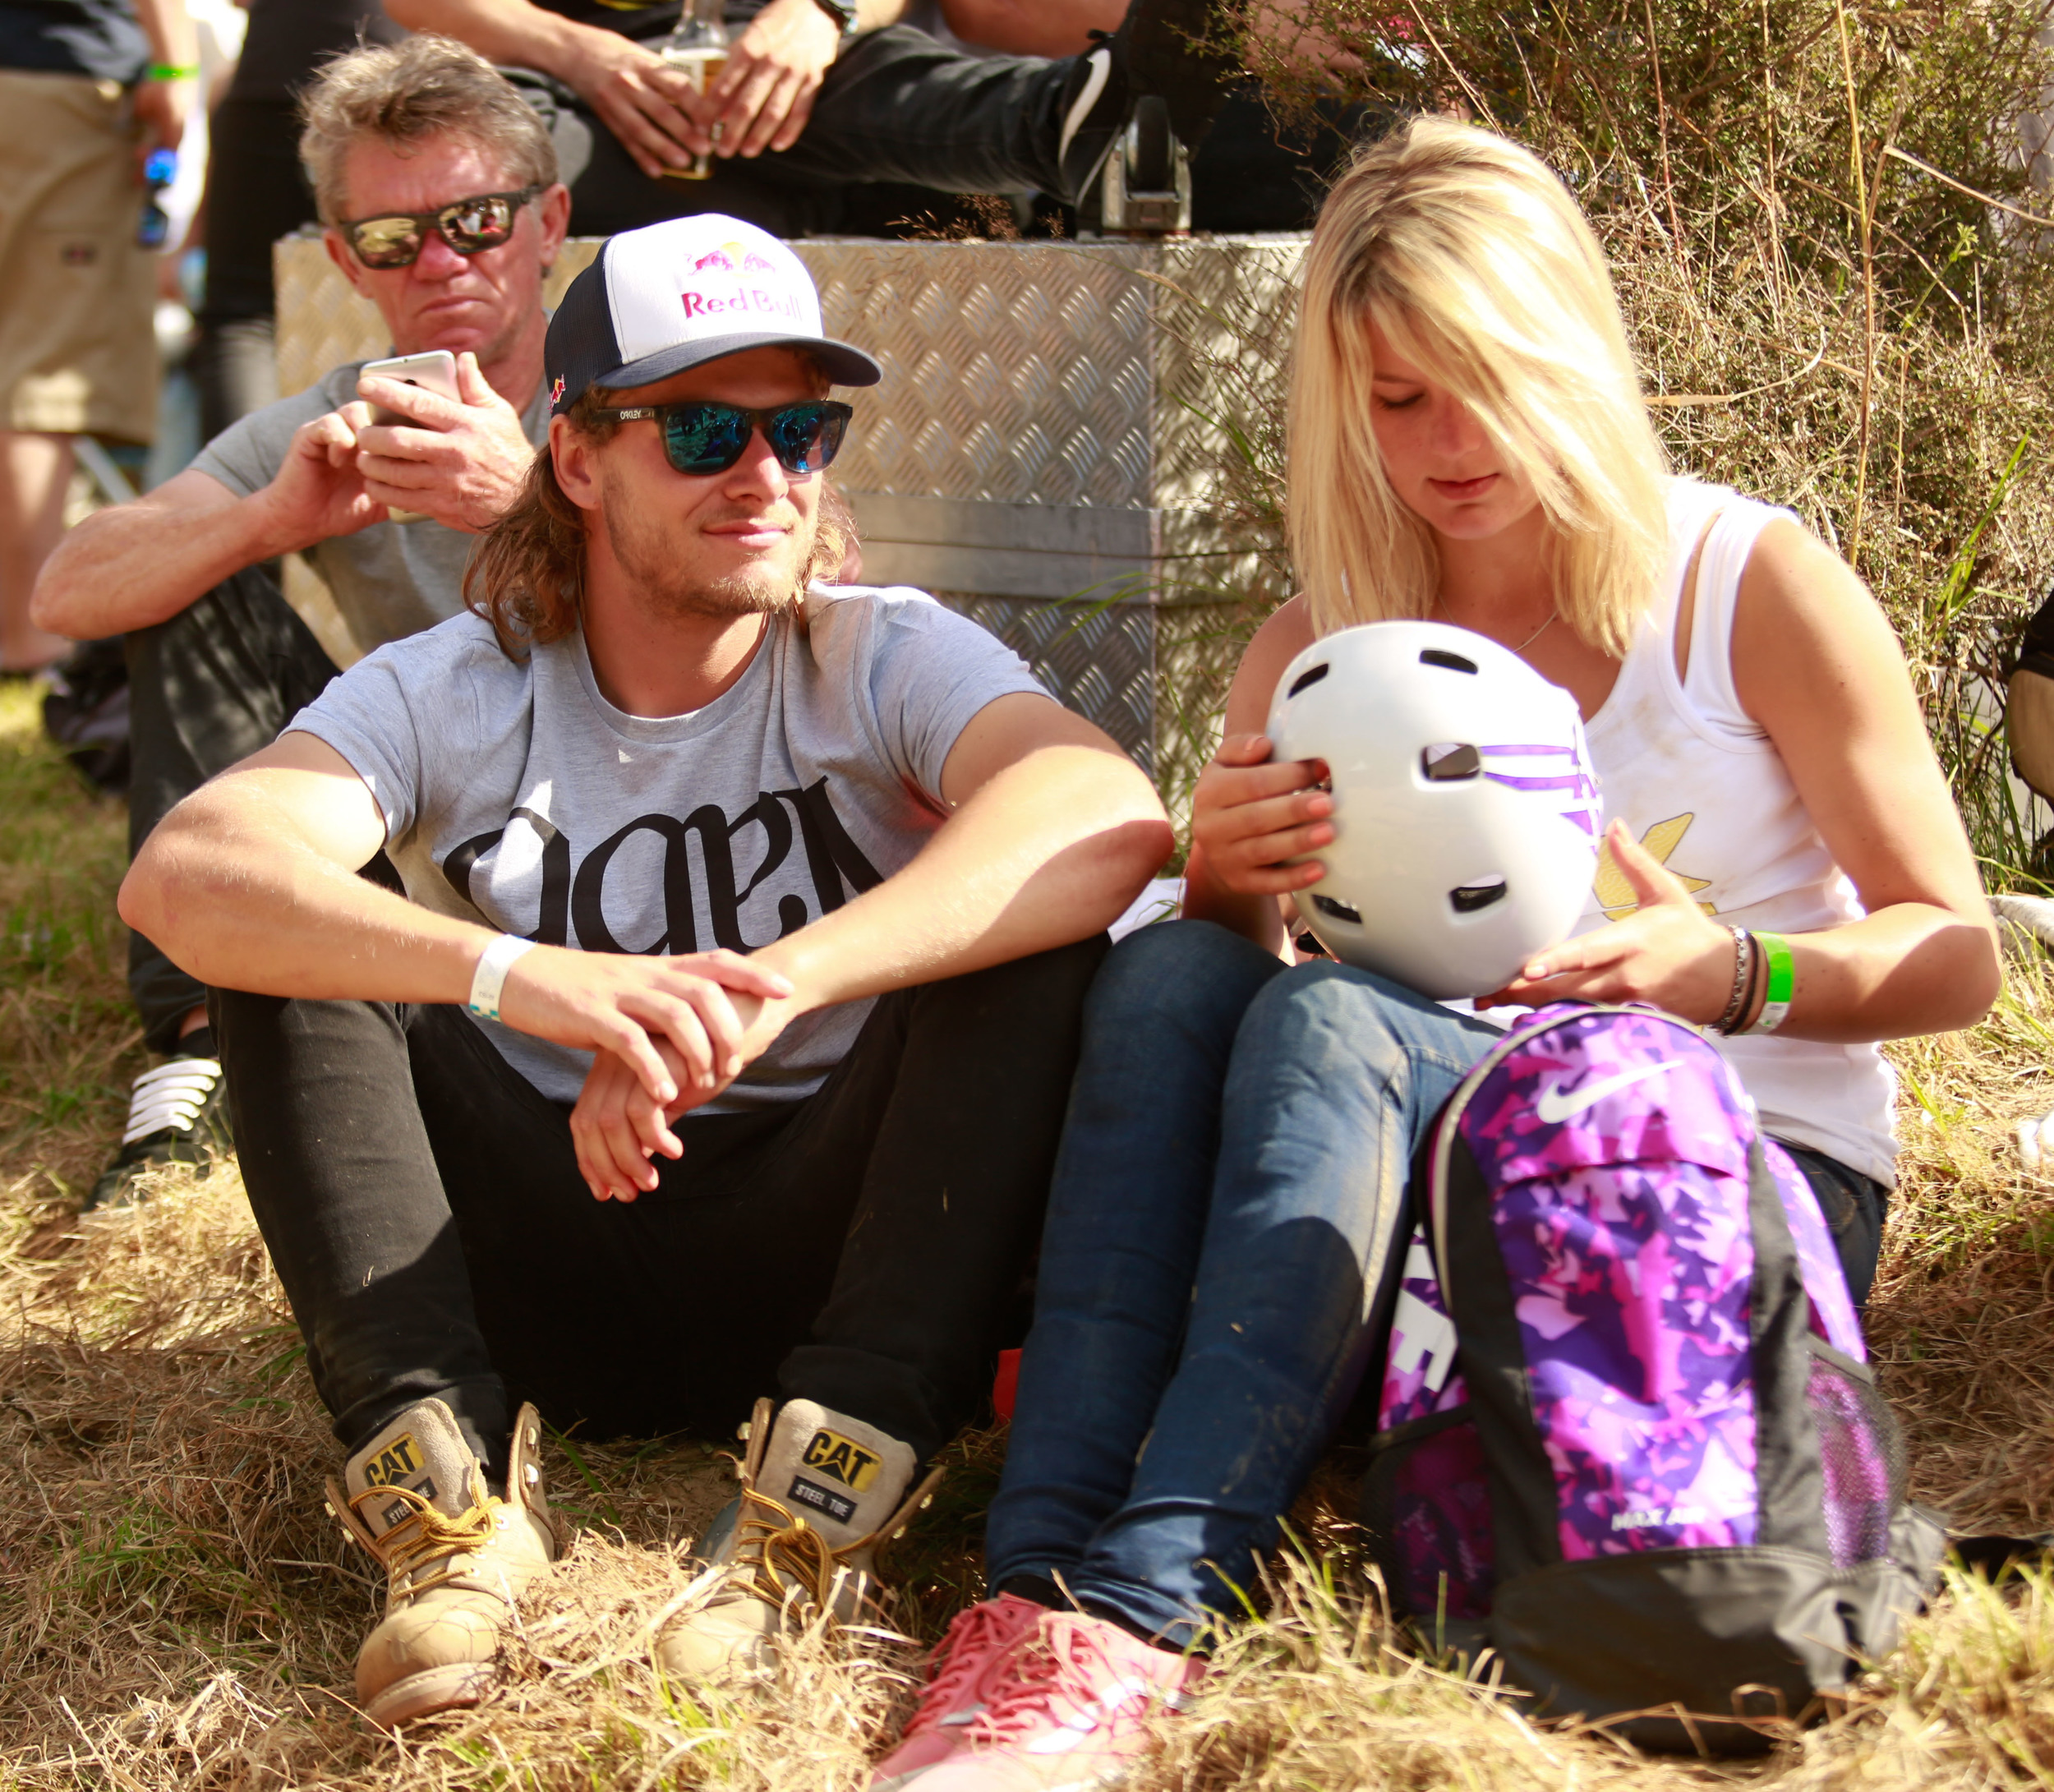 Levi Sherwood and his girlfriend Ellie Chew watch the BMX and MTB divisions. Ellie managed to show some of the guys up on the track during practice riding a BMX handbuilt by Levi.